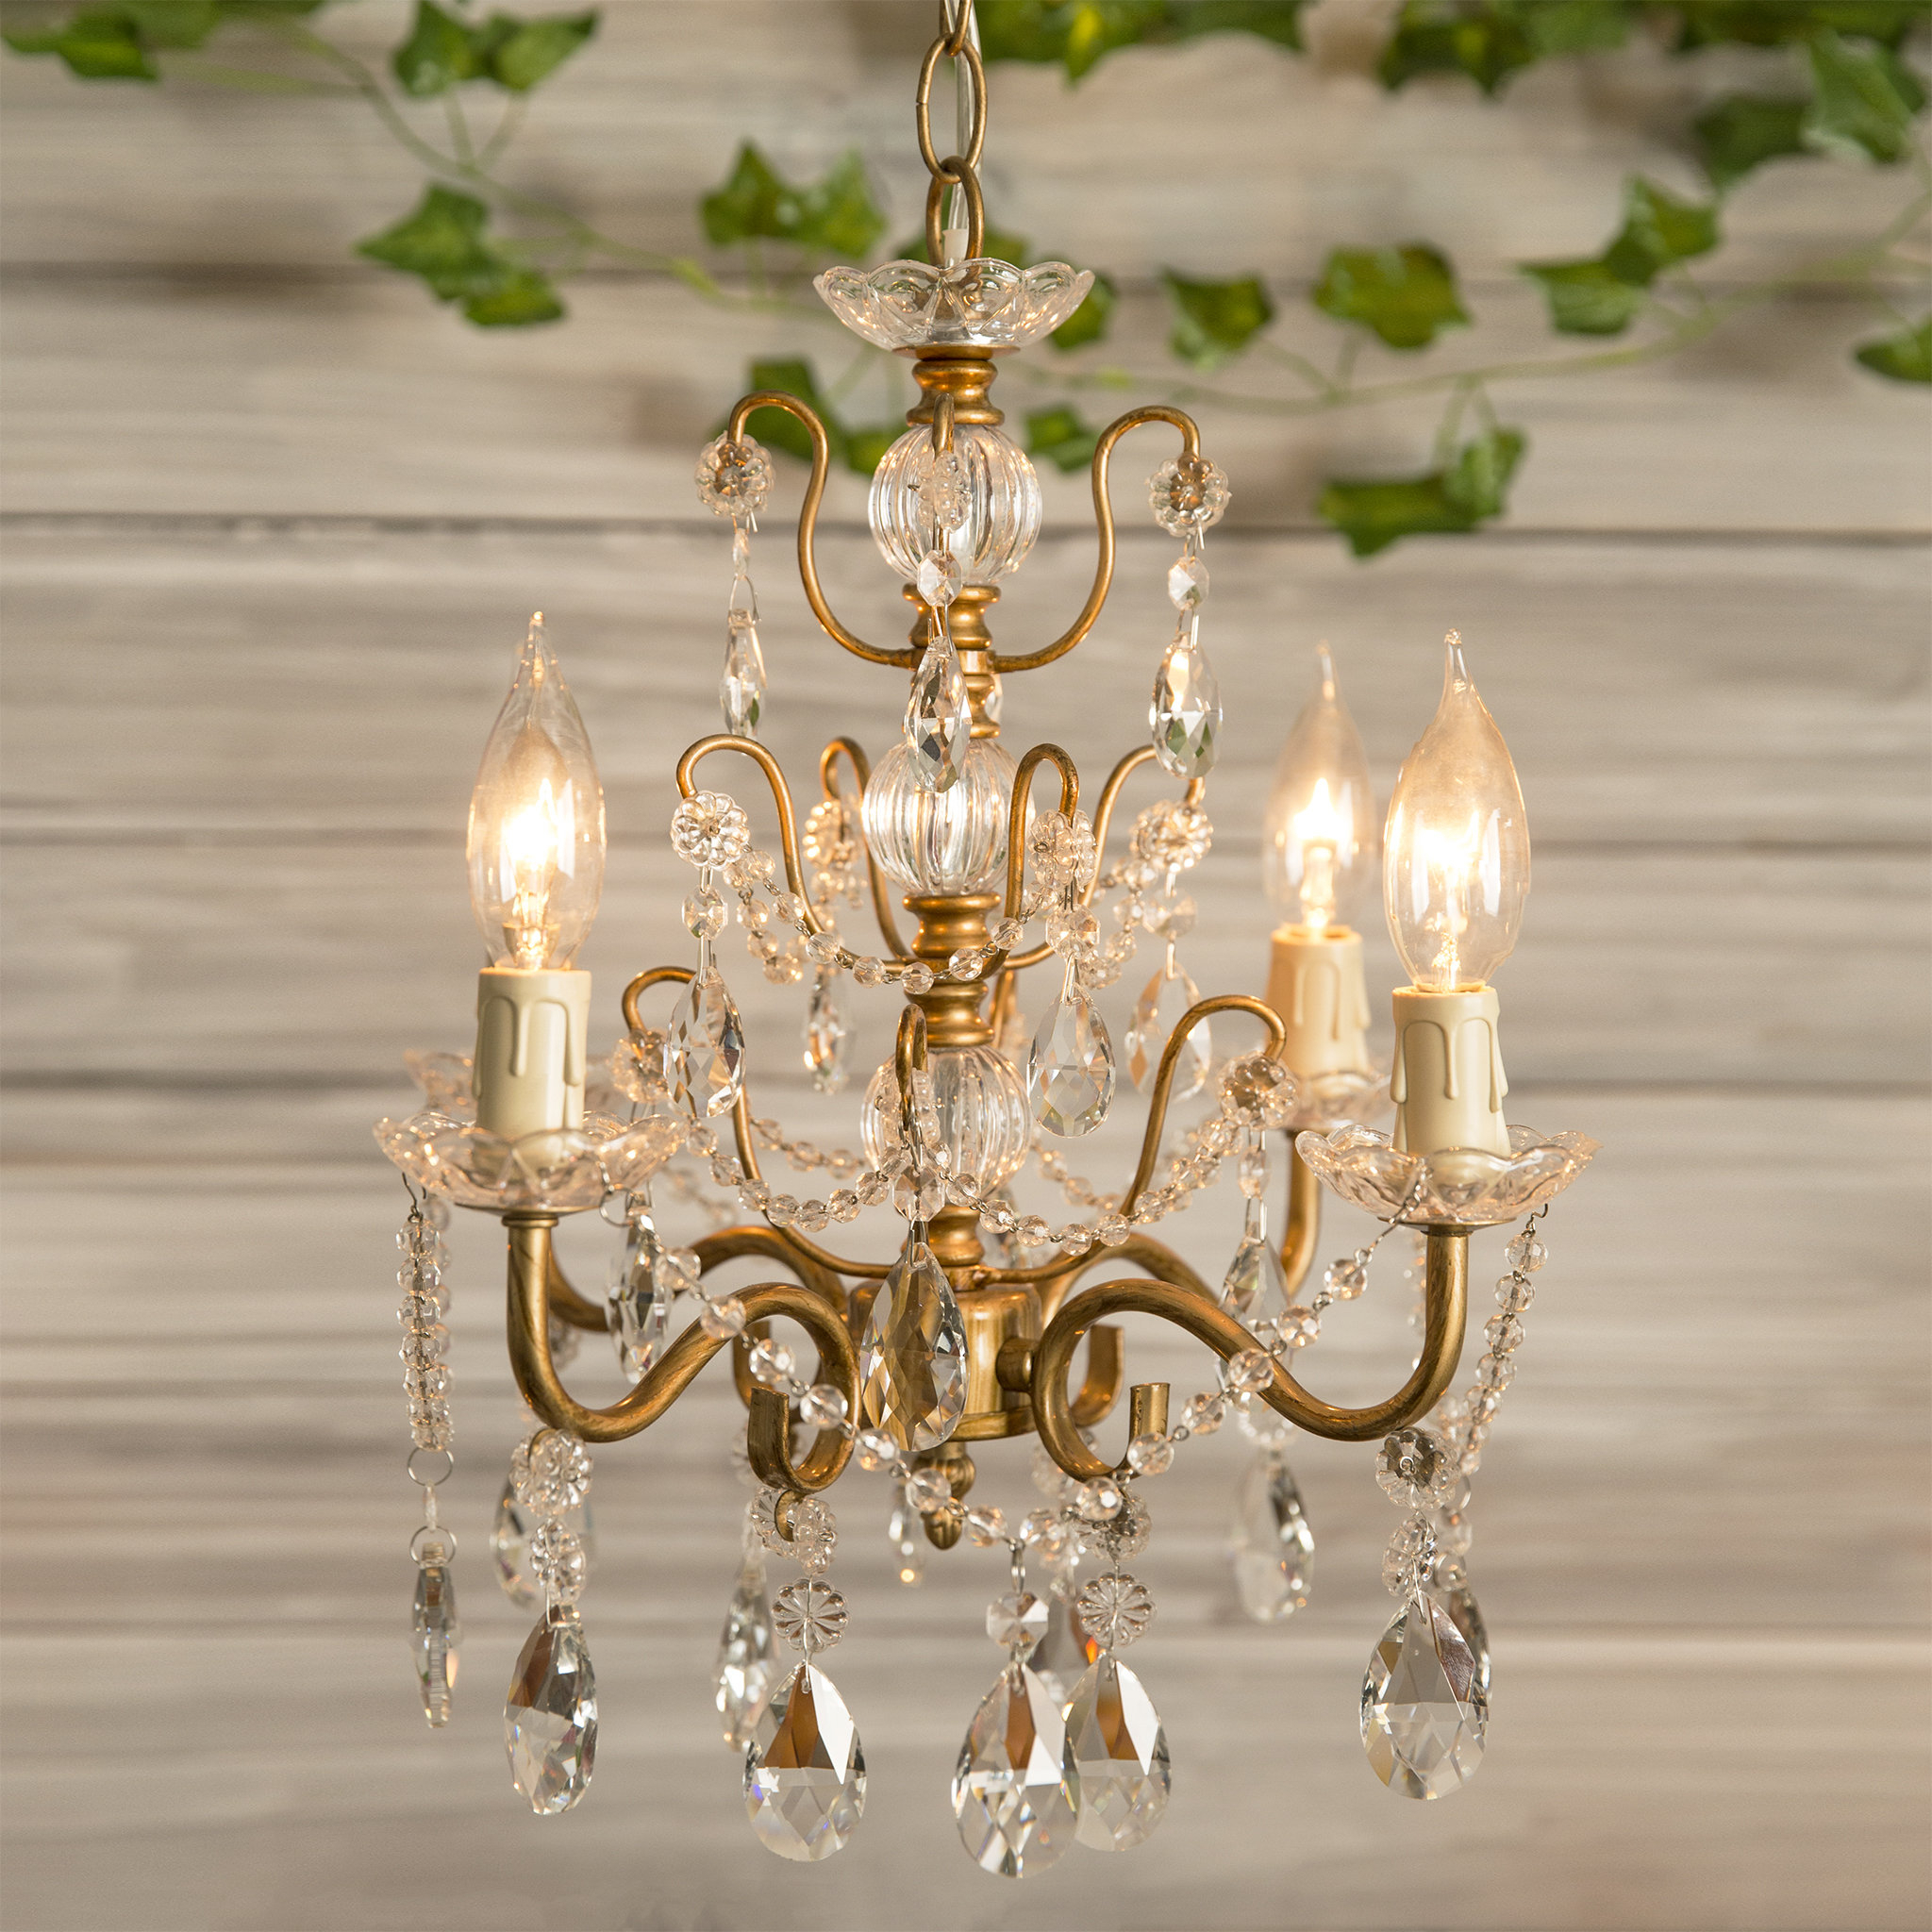 Current Blanchette 5 Light Candle Style Chandeliers Pertaining To Blanchette 4 Light Candle Style Chandelier (View 4 of 20)